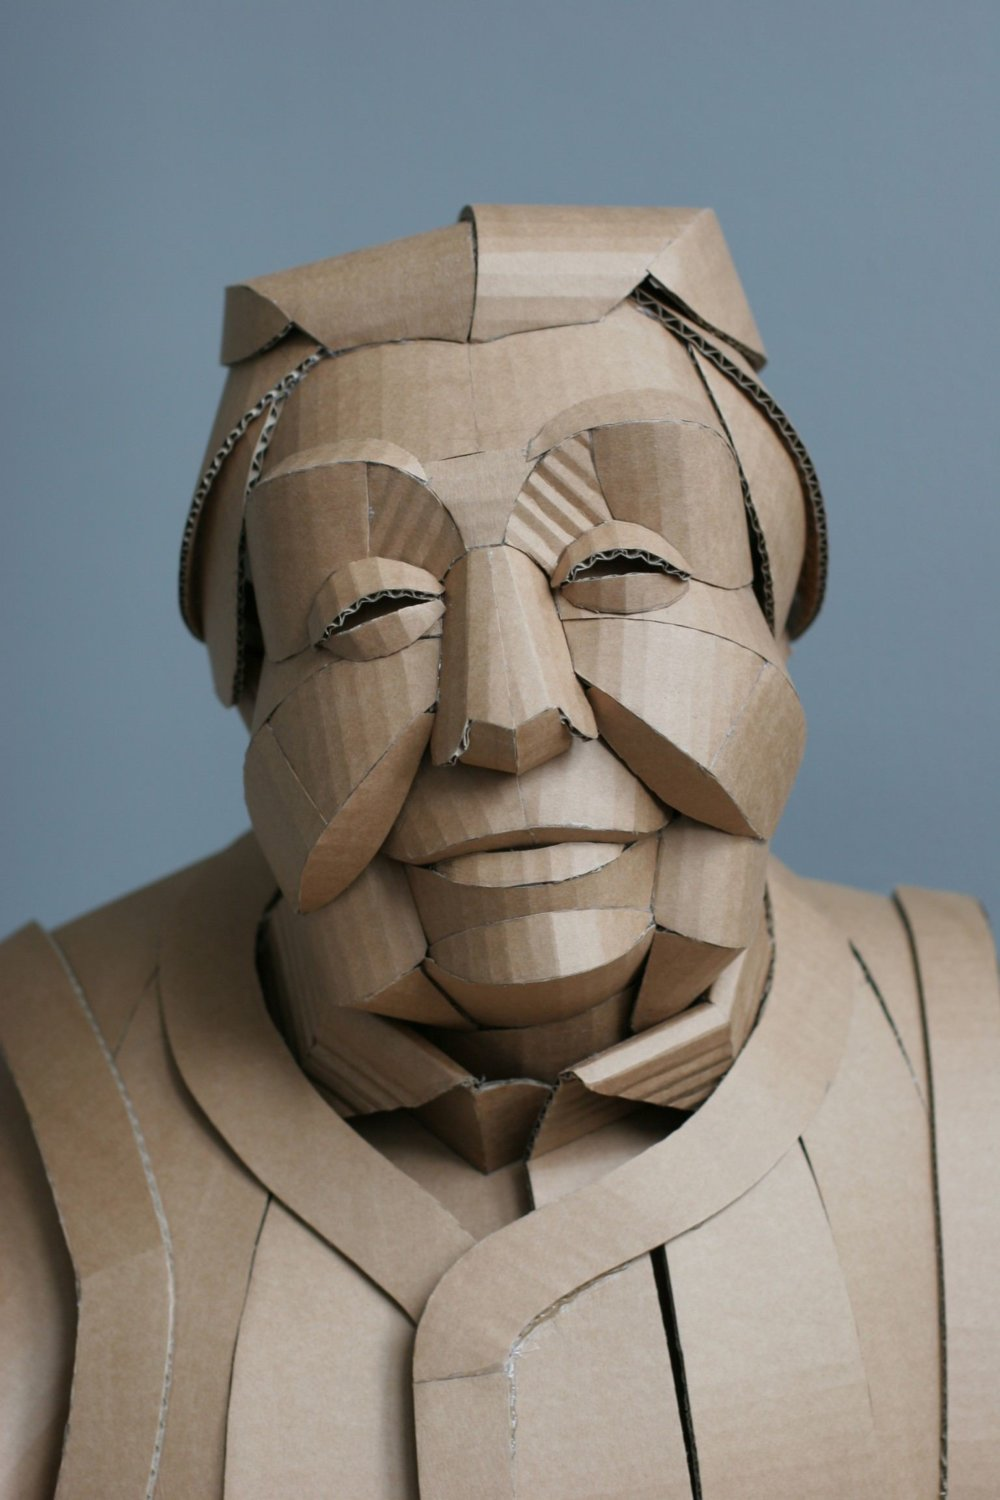 Magnificent Figurative Sculptures Made Entirely Out Of Cardboard By Warren King 2